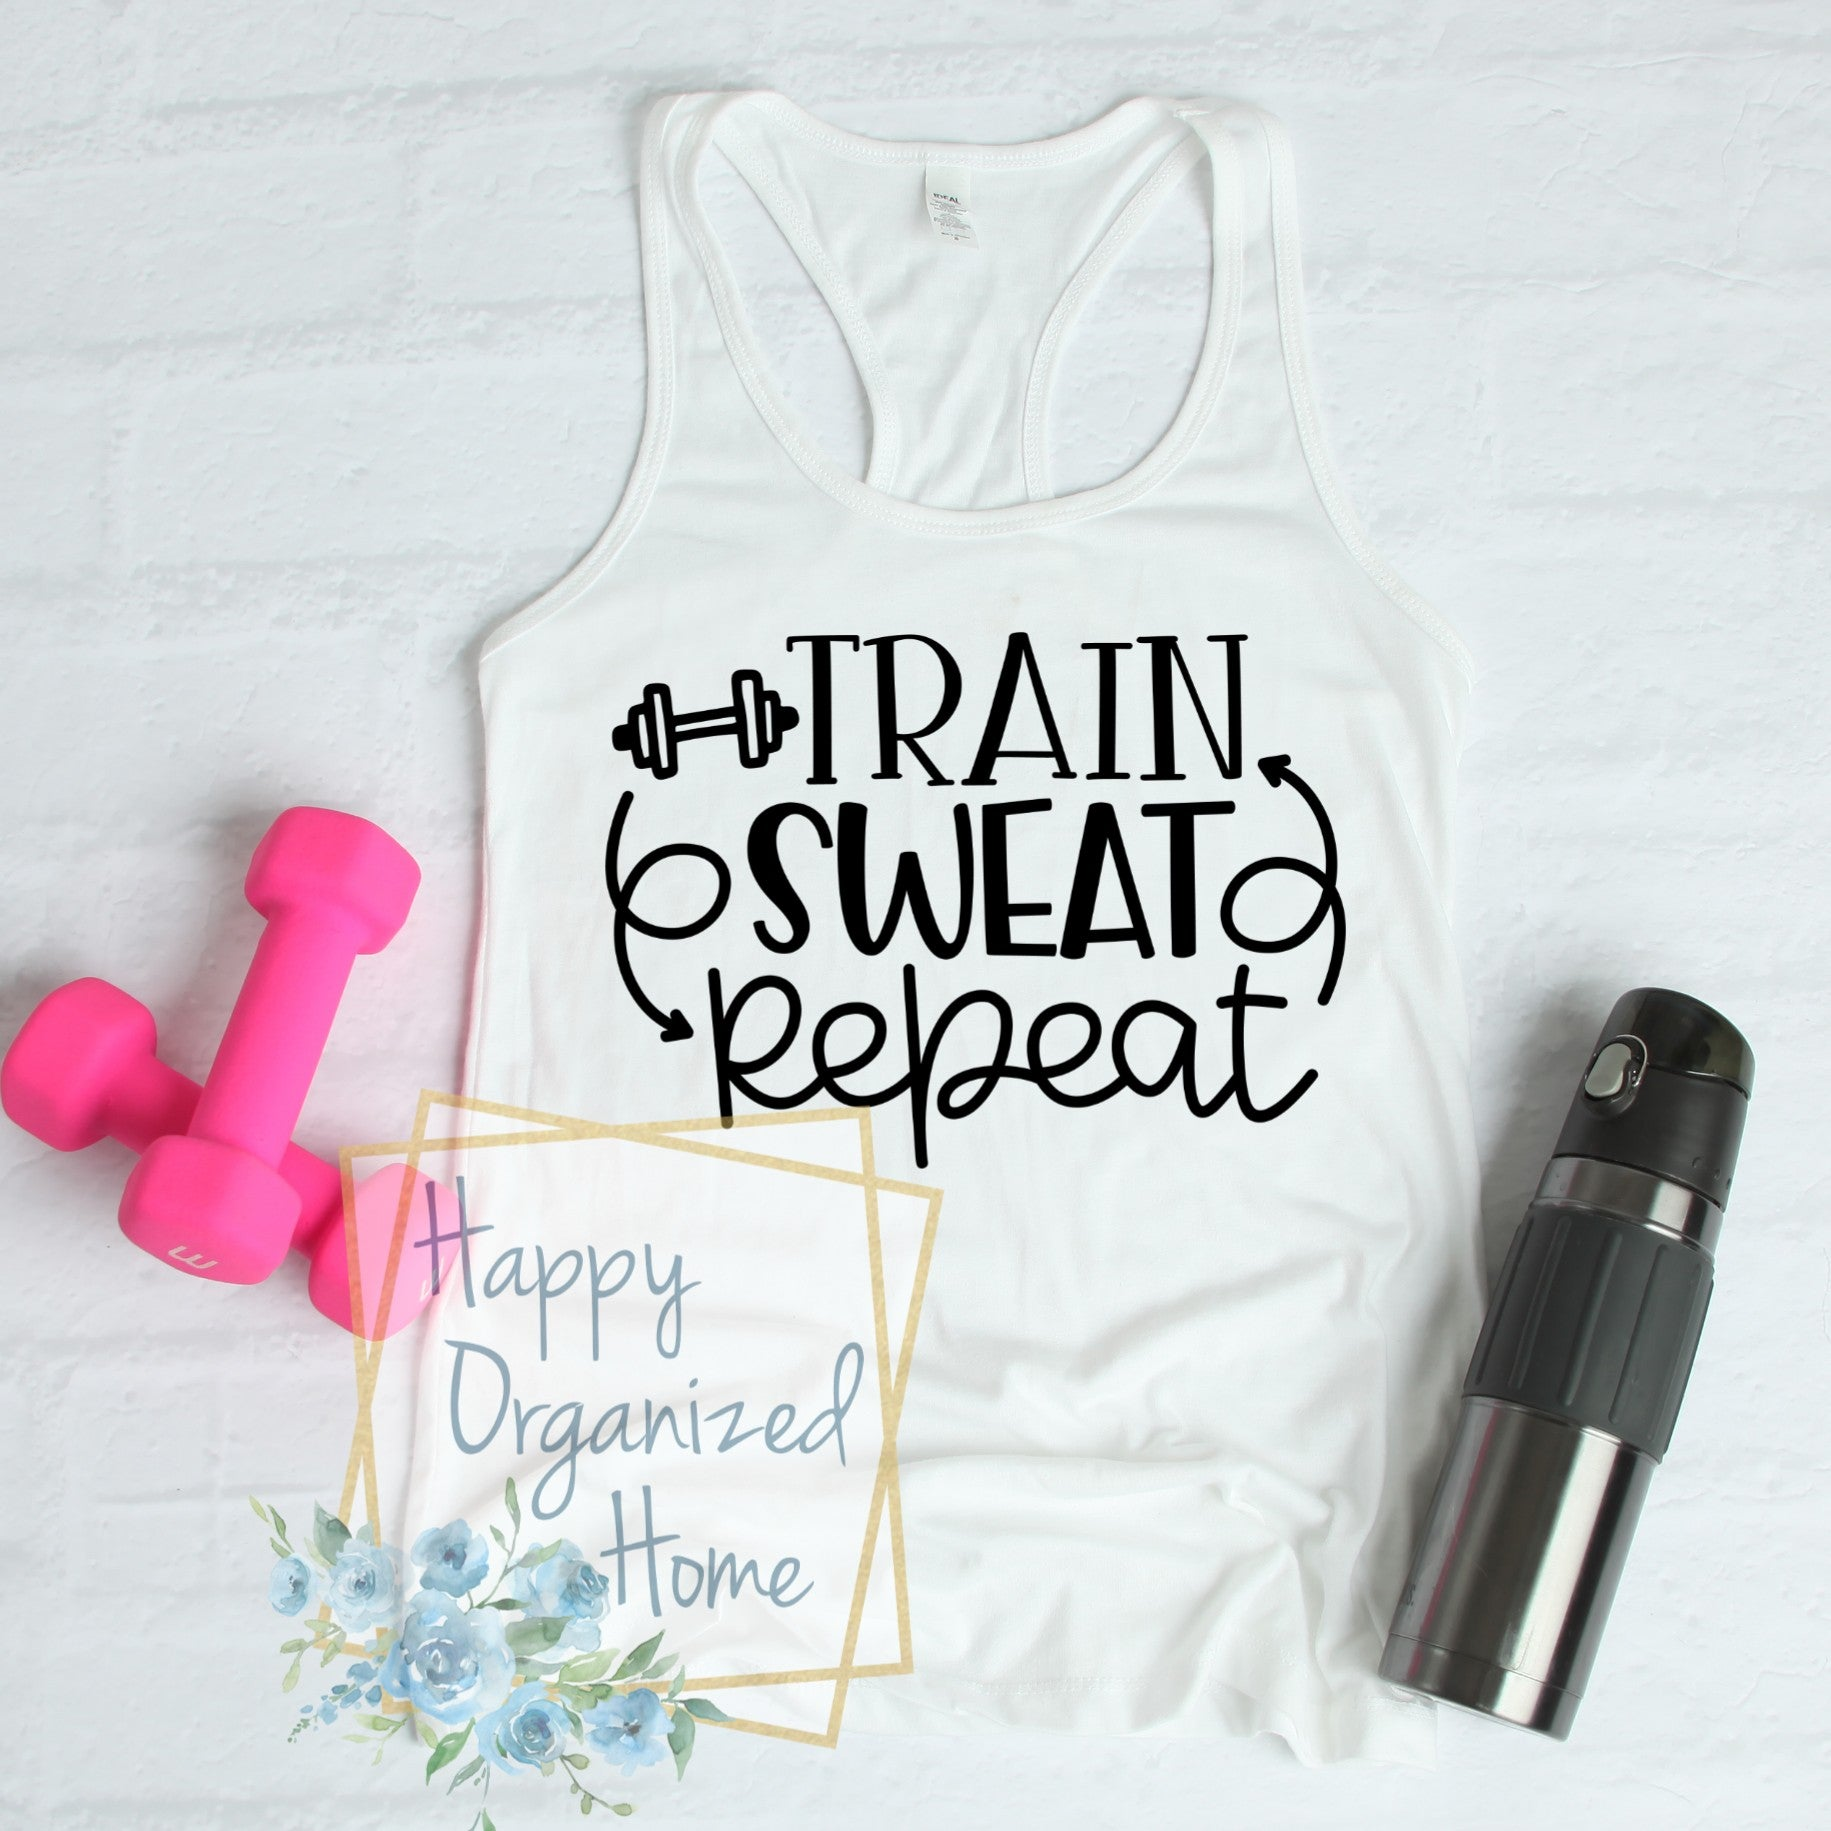 Train, Sweat, Repeat - Ladies Fitness Exercise tank